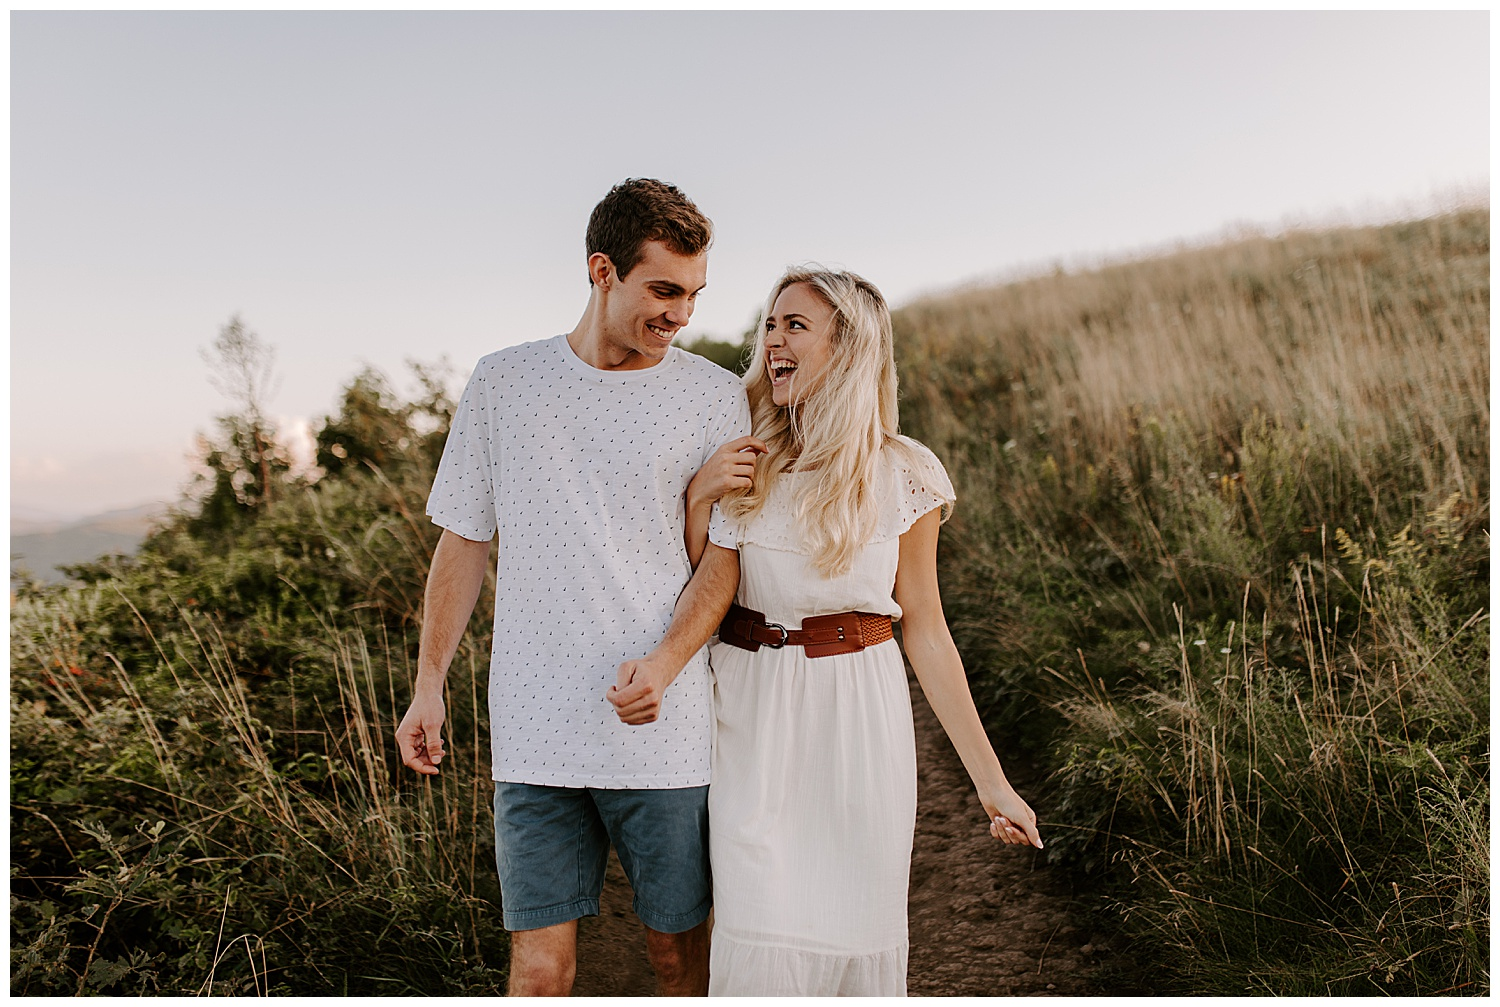 HANNAH_NICK_MAXPATCH_ENGAGEMENT2019-09-05_0009.jpg